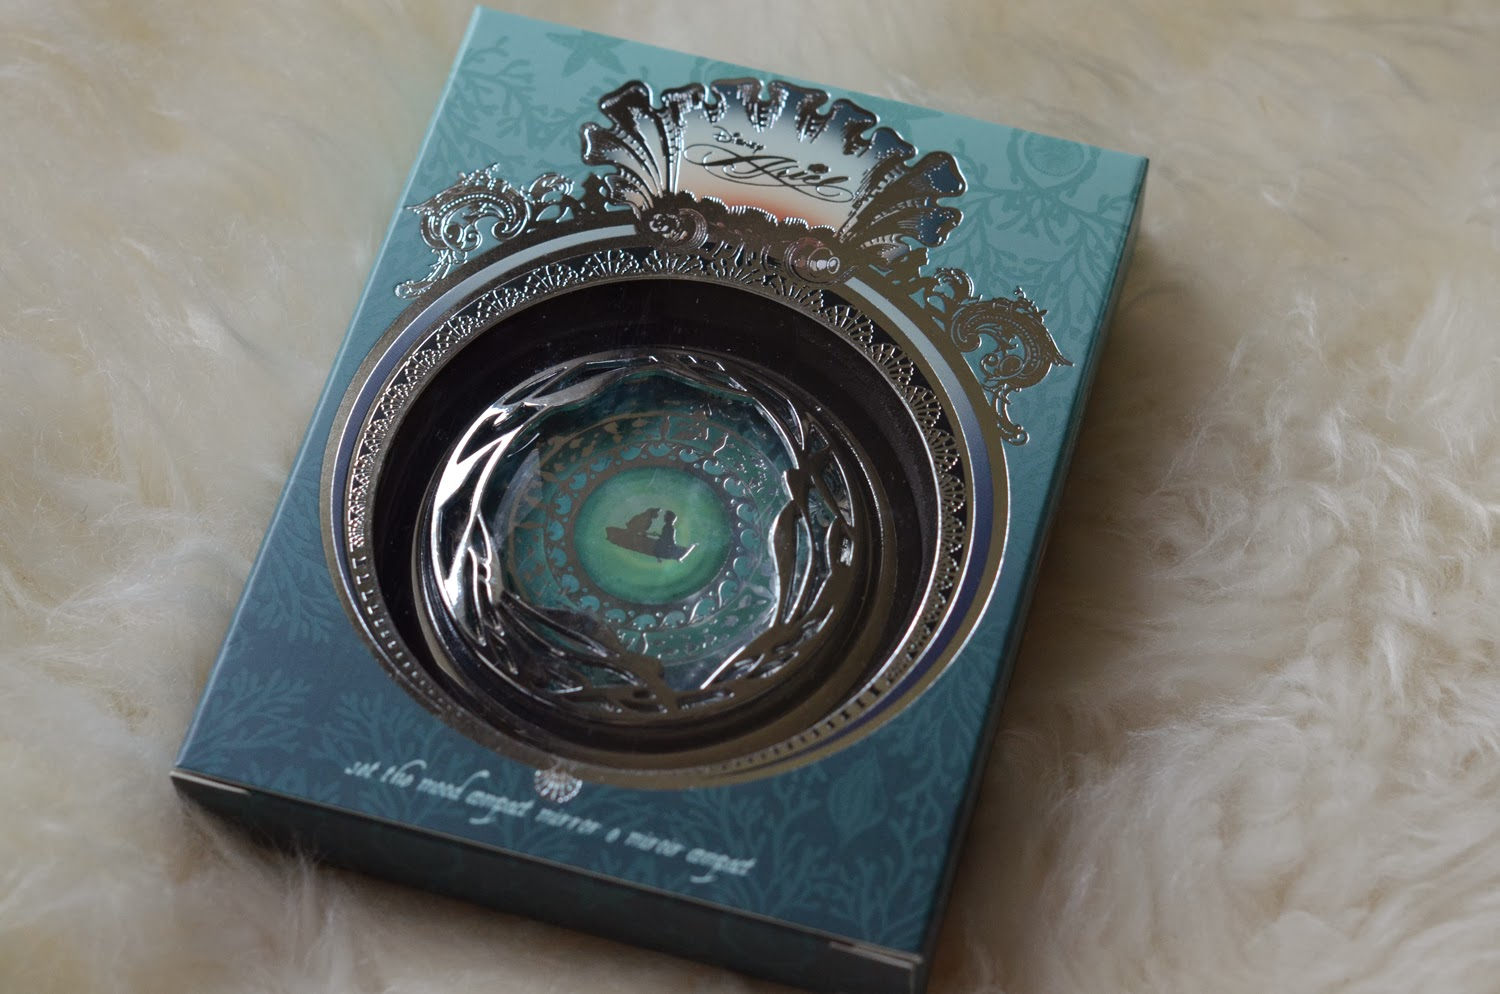 Ariel Set The mood compact Disney Sephora Collection